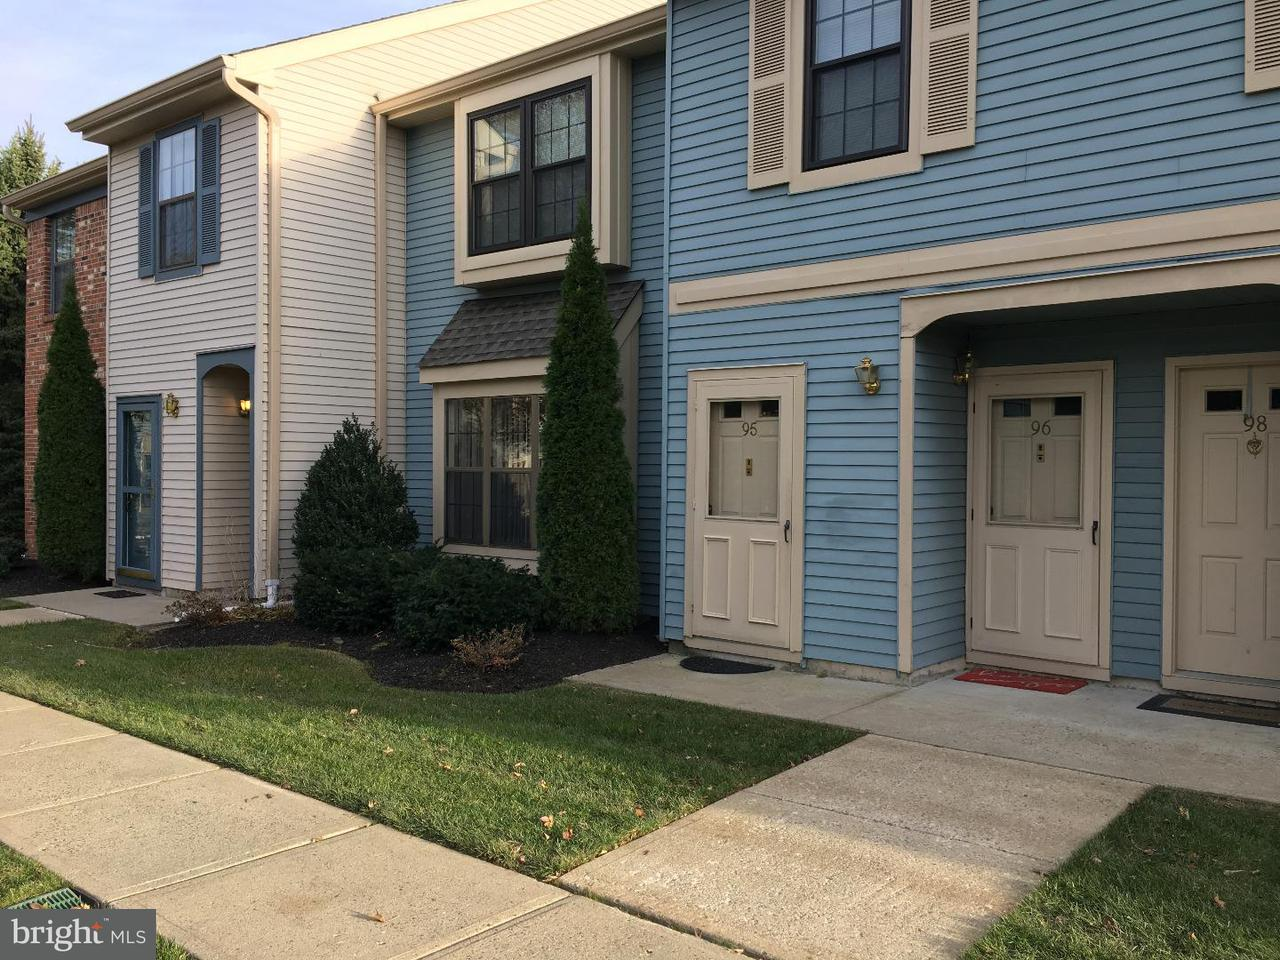 Single Family Home for Rent at 95 WYNDHAM Place Trenton, New Jersey 08691 United StatesMunicipality: Robbinsville Township